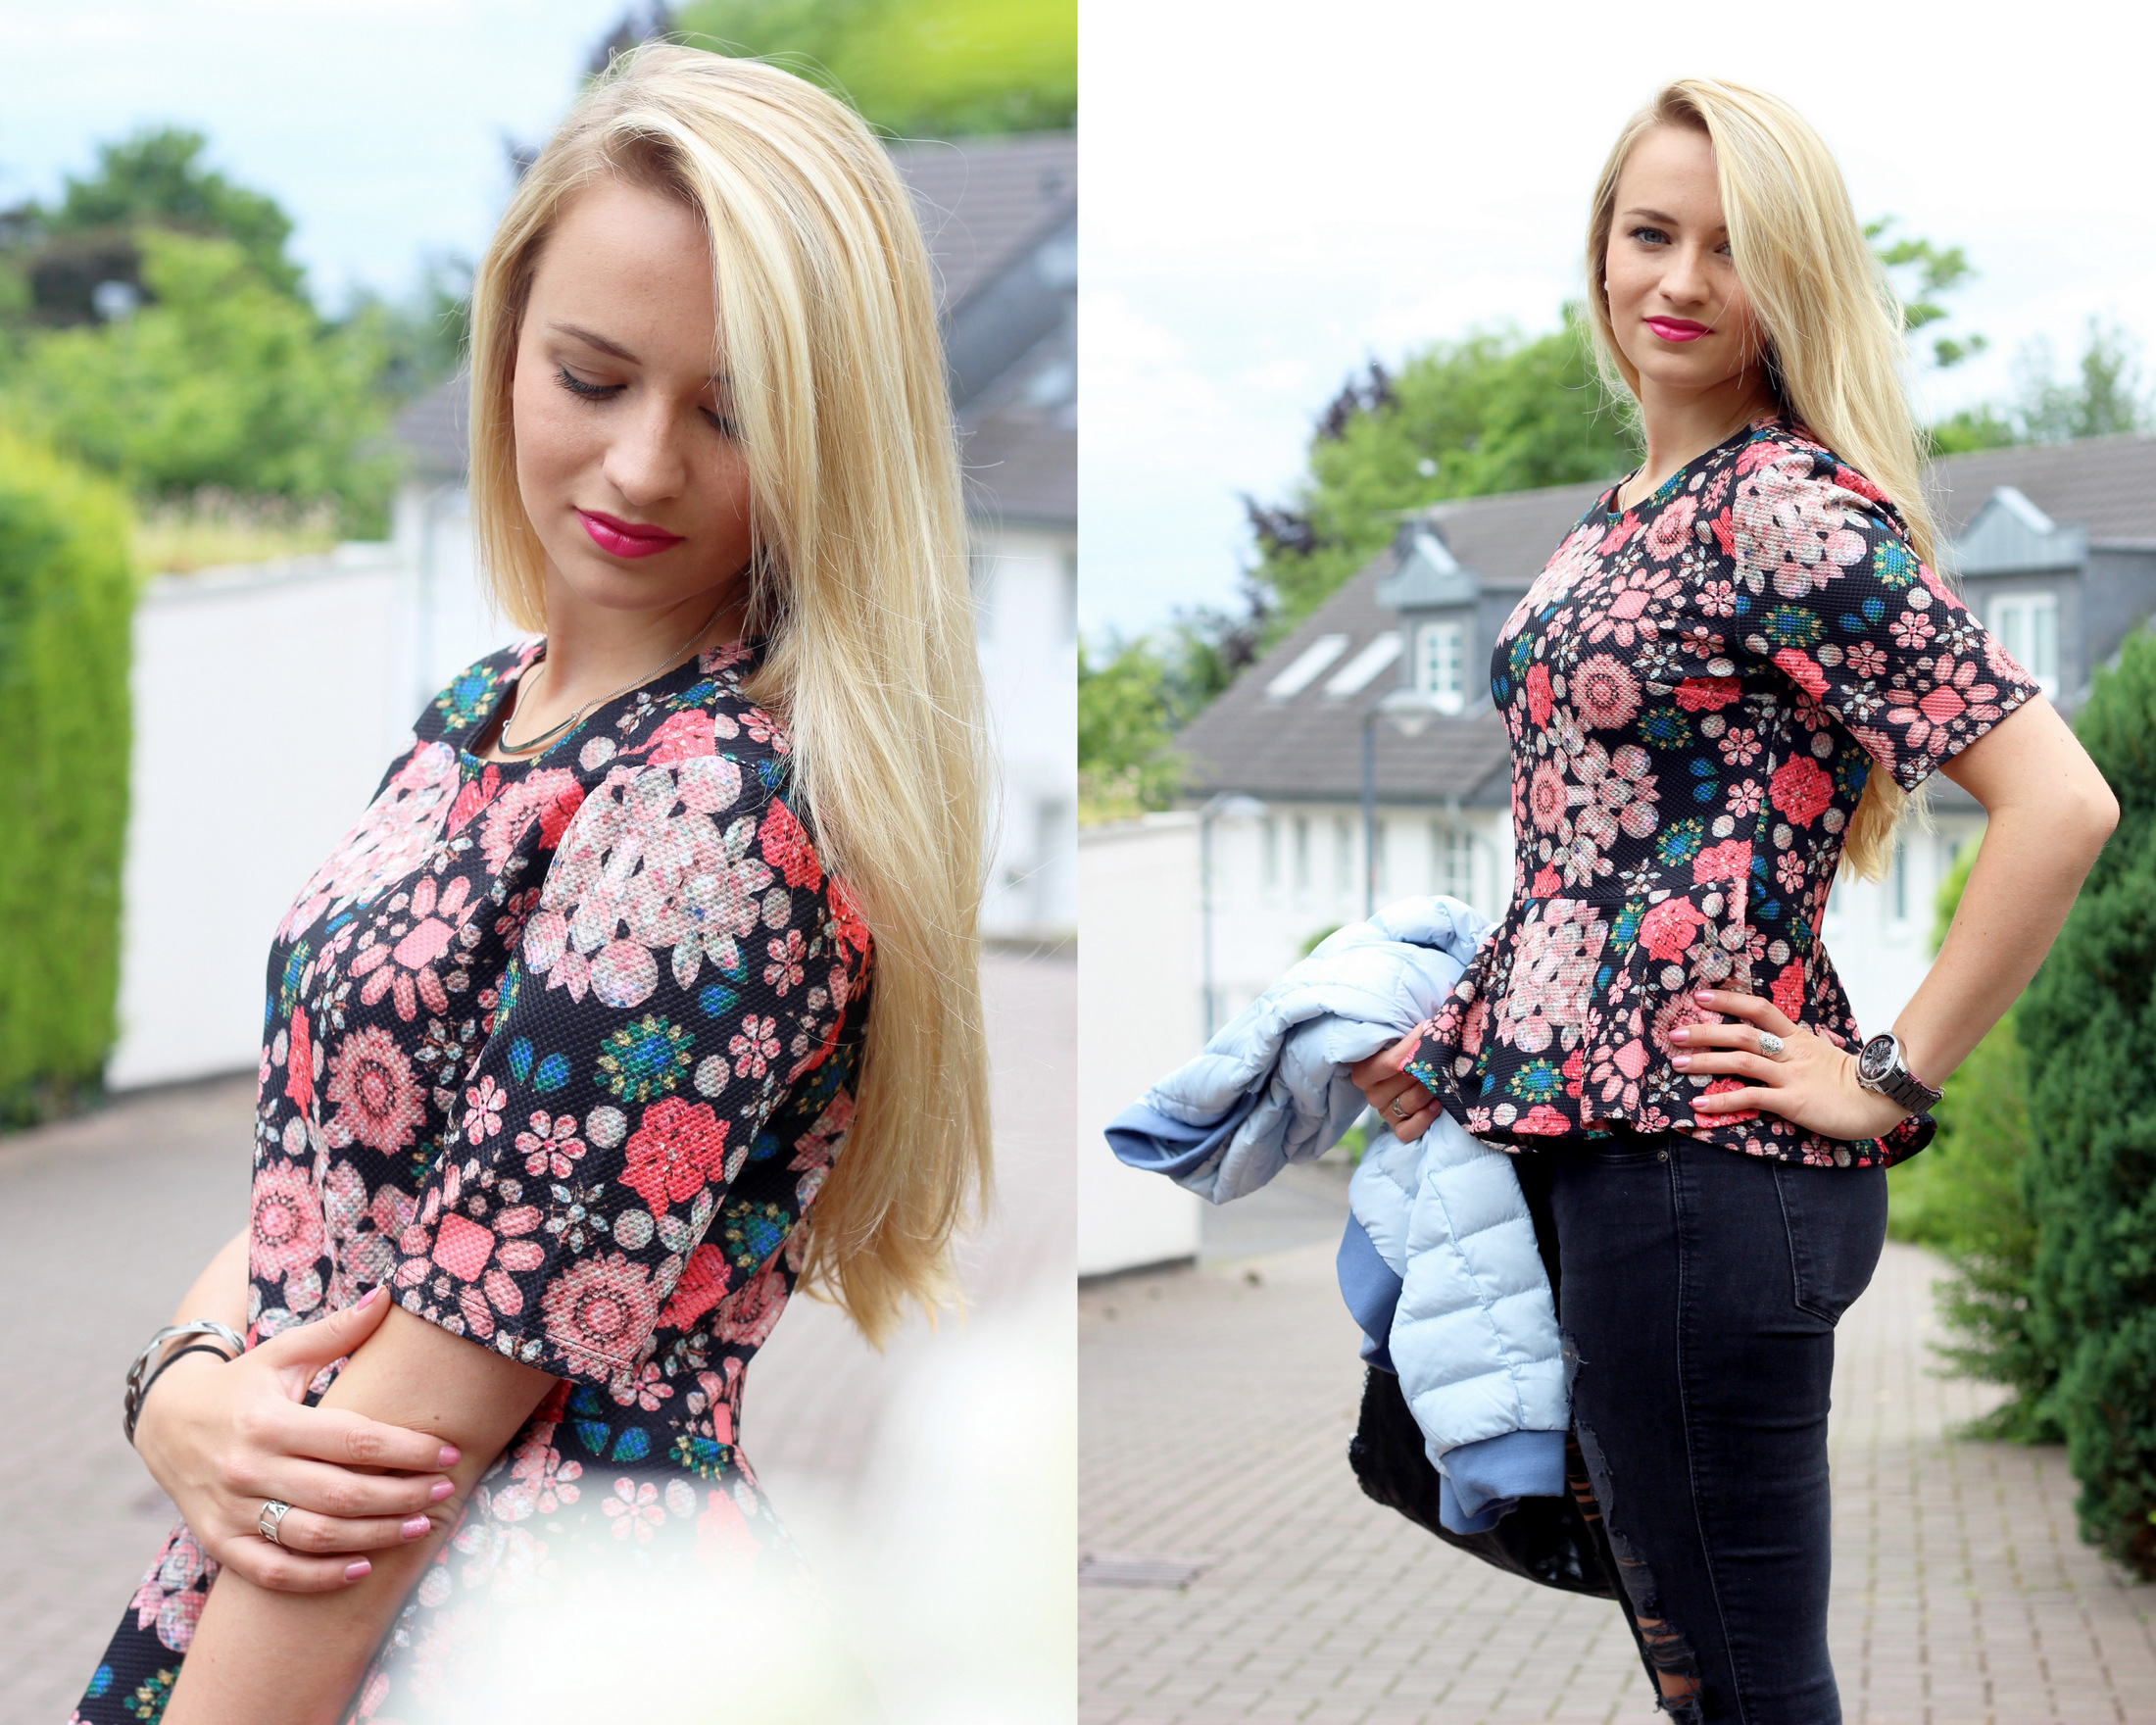 lightweight-jacket-peplum-shirt-flowers-skinny-jeans-ripped-destroyed-jeans (2)